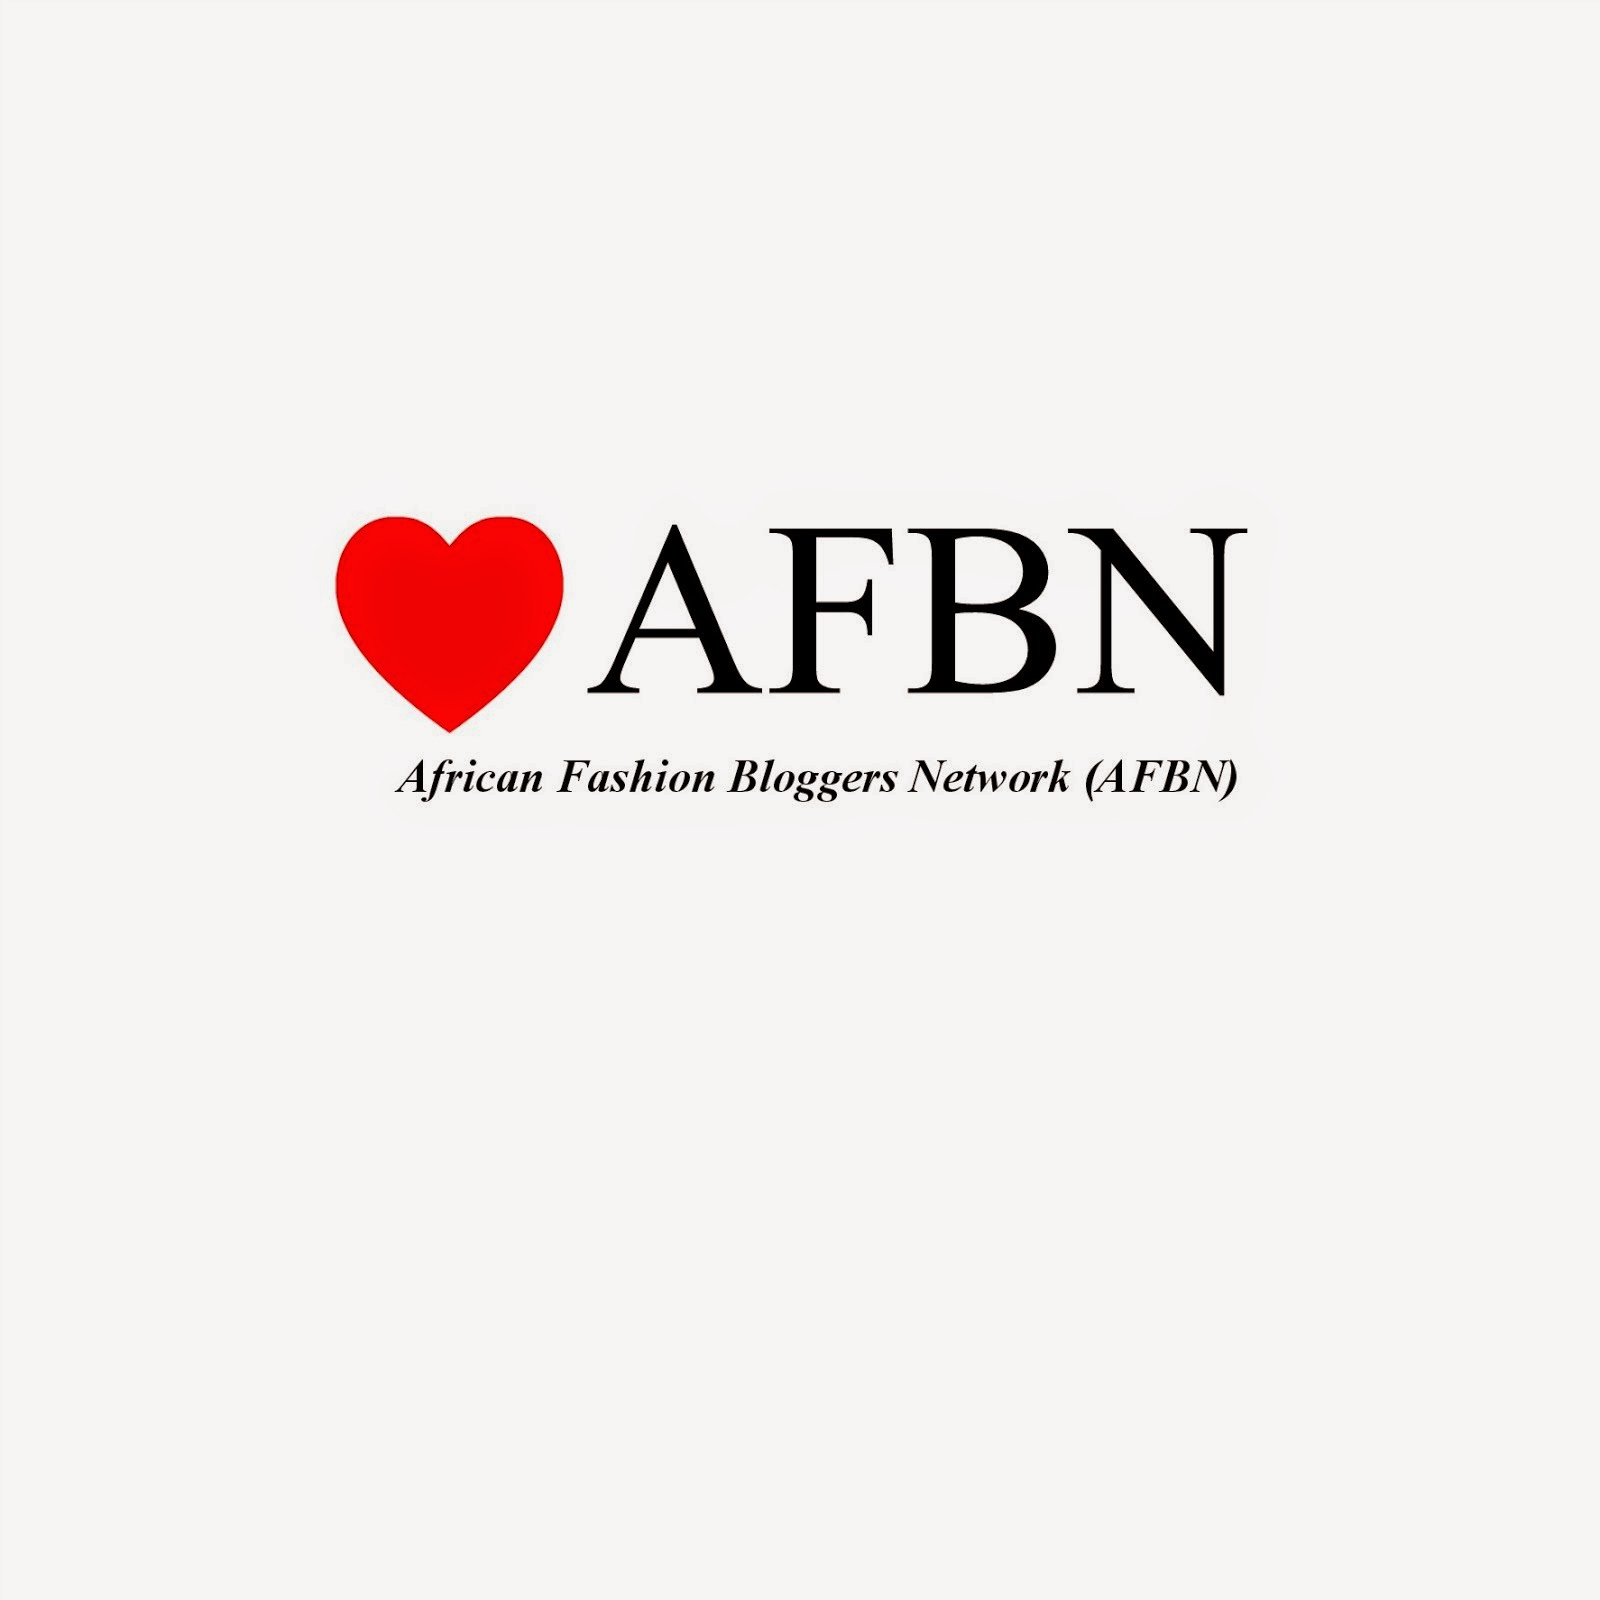 African fashion bloggers network